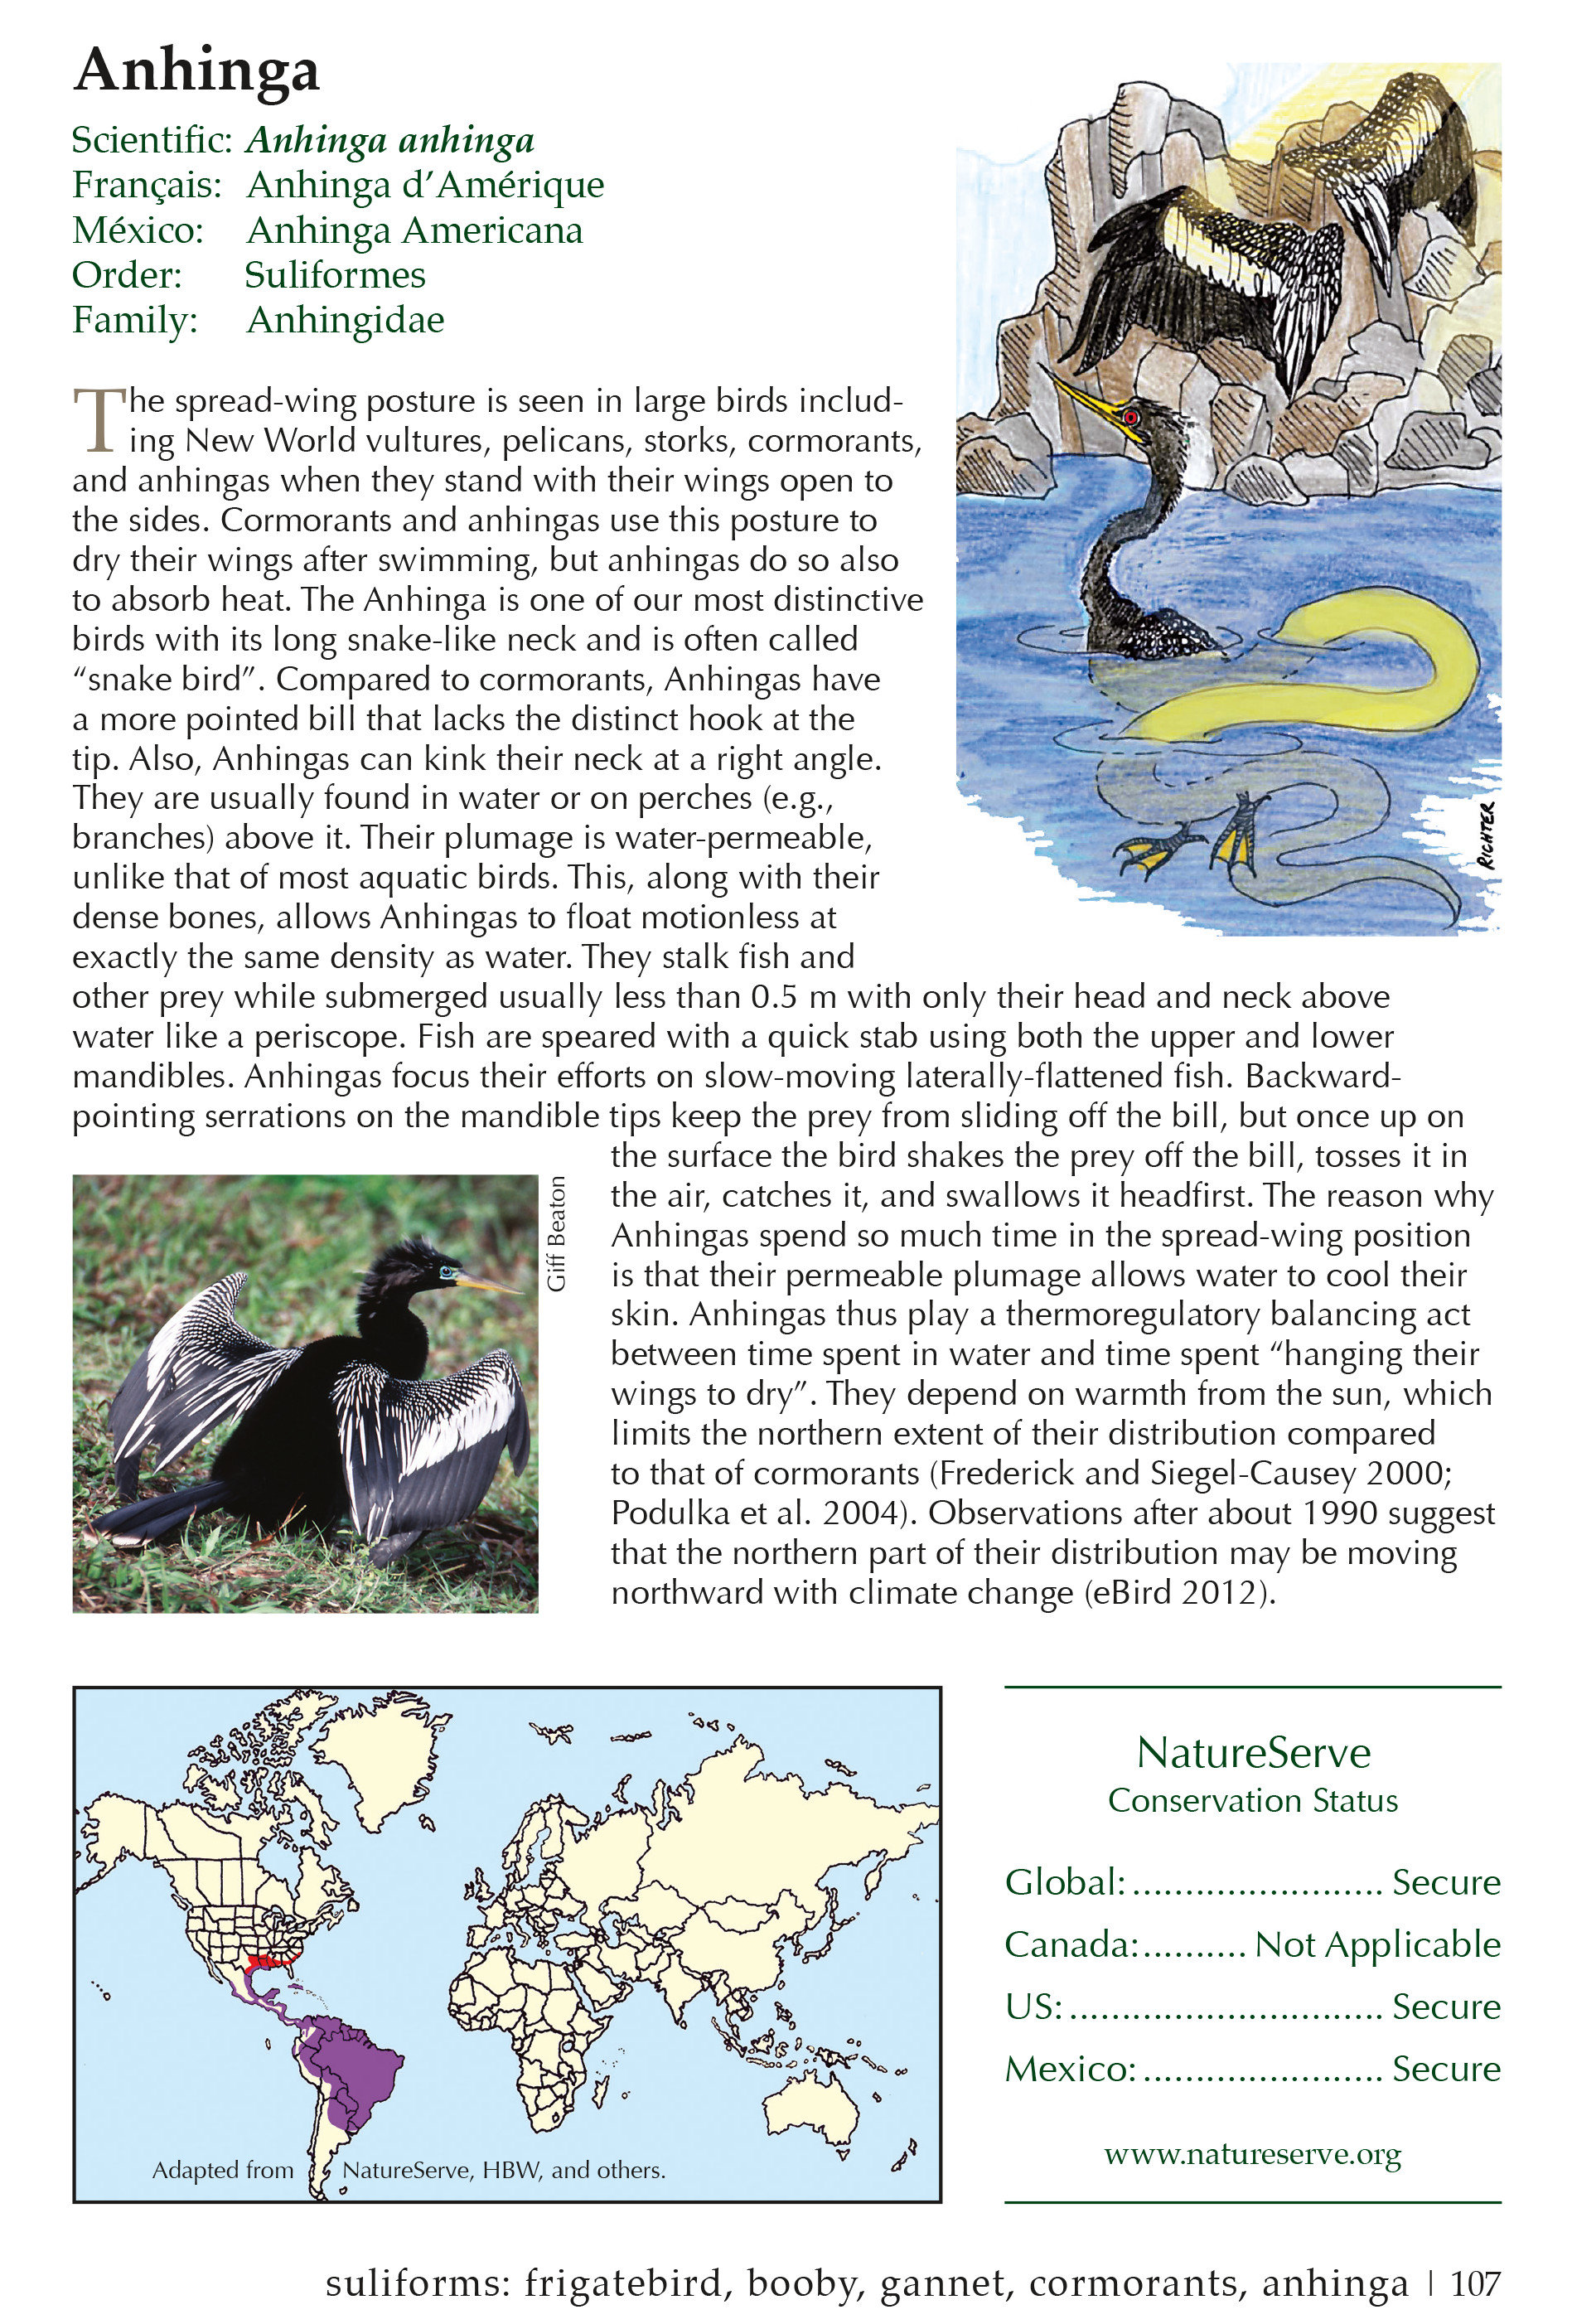 Sample page for the Anhinga